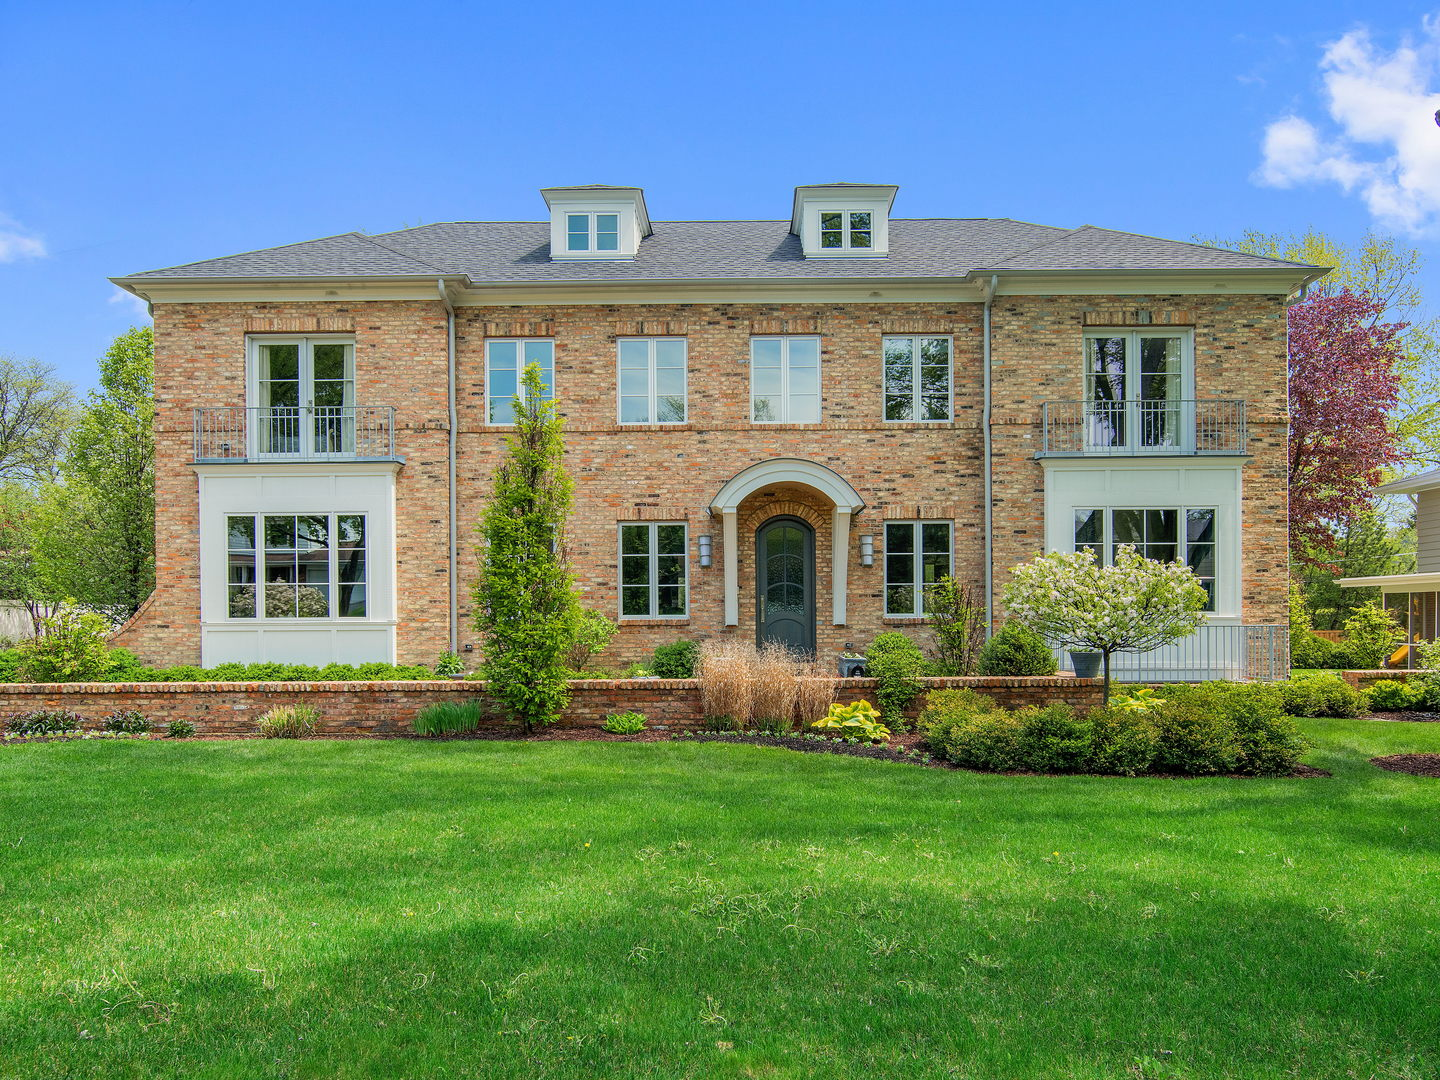 323 North Quincy Street, Hinsdale, Illinois 60521